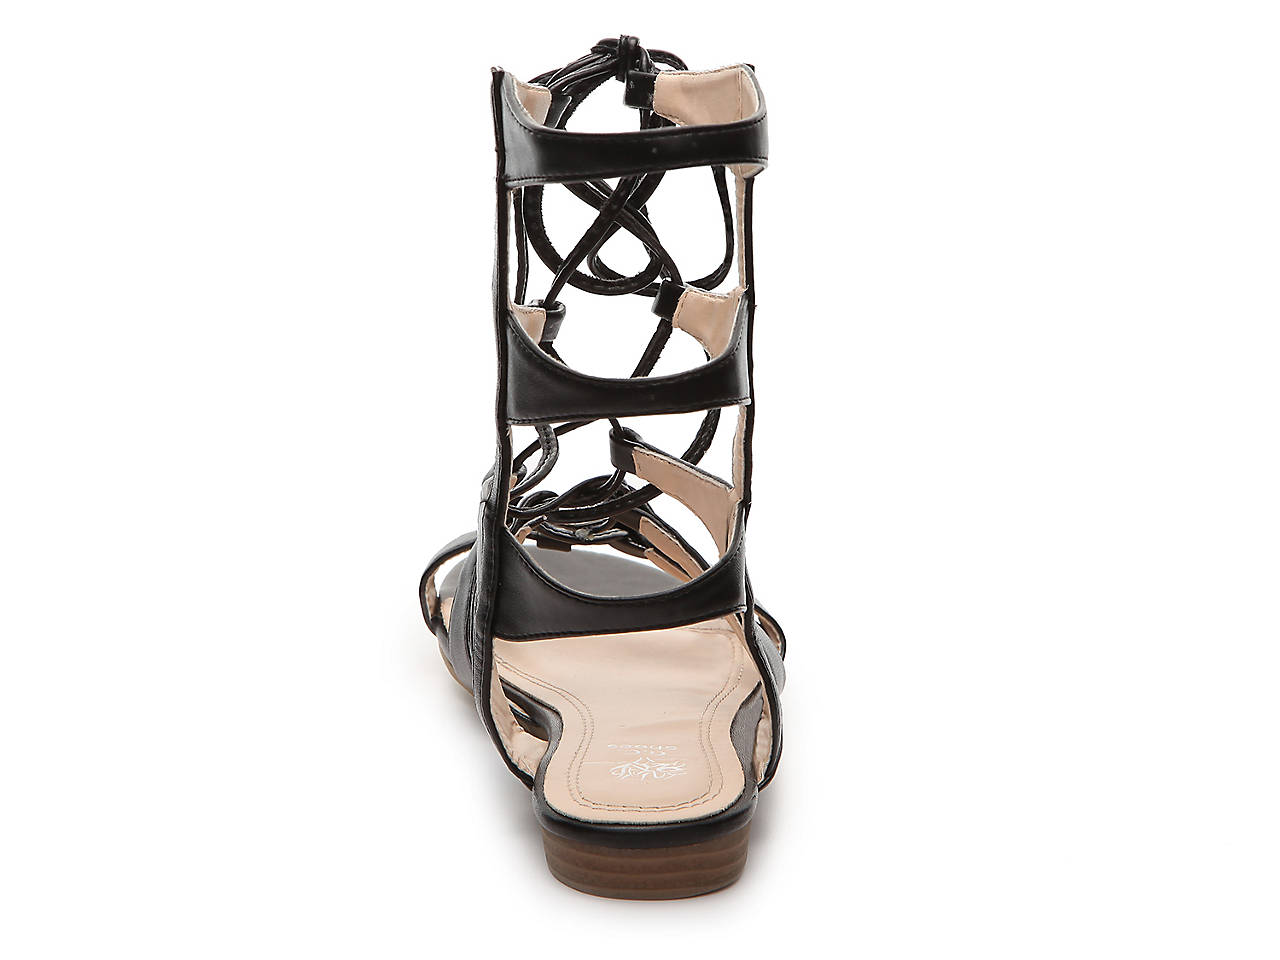 fe3658000 GC Shoes Amazon Gladiator Sandal Women s Shoes